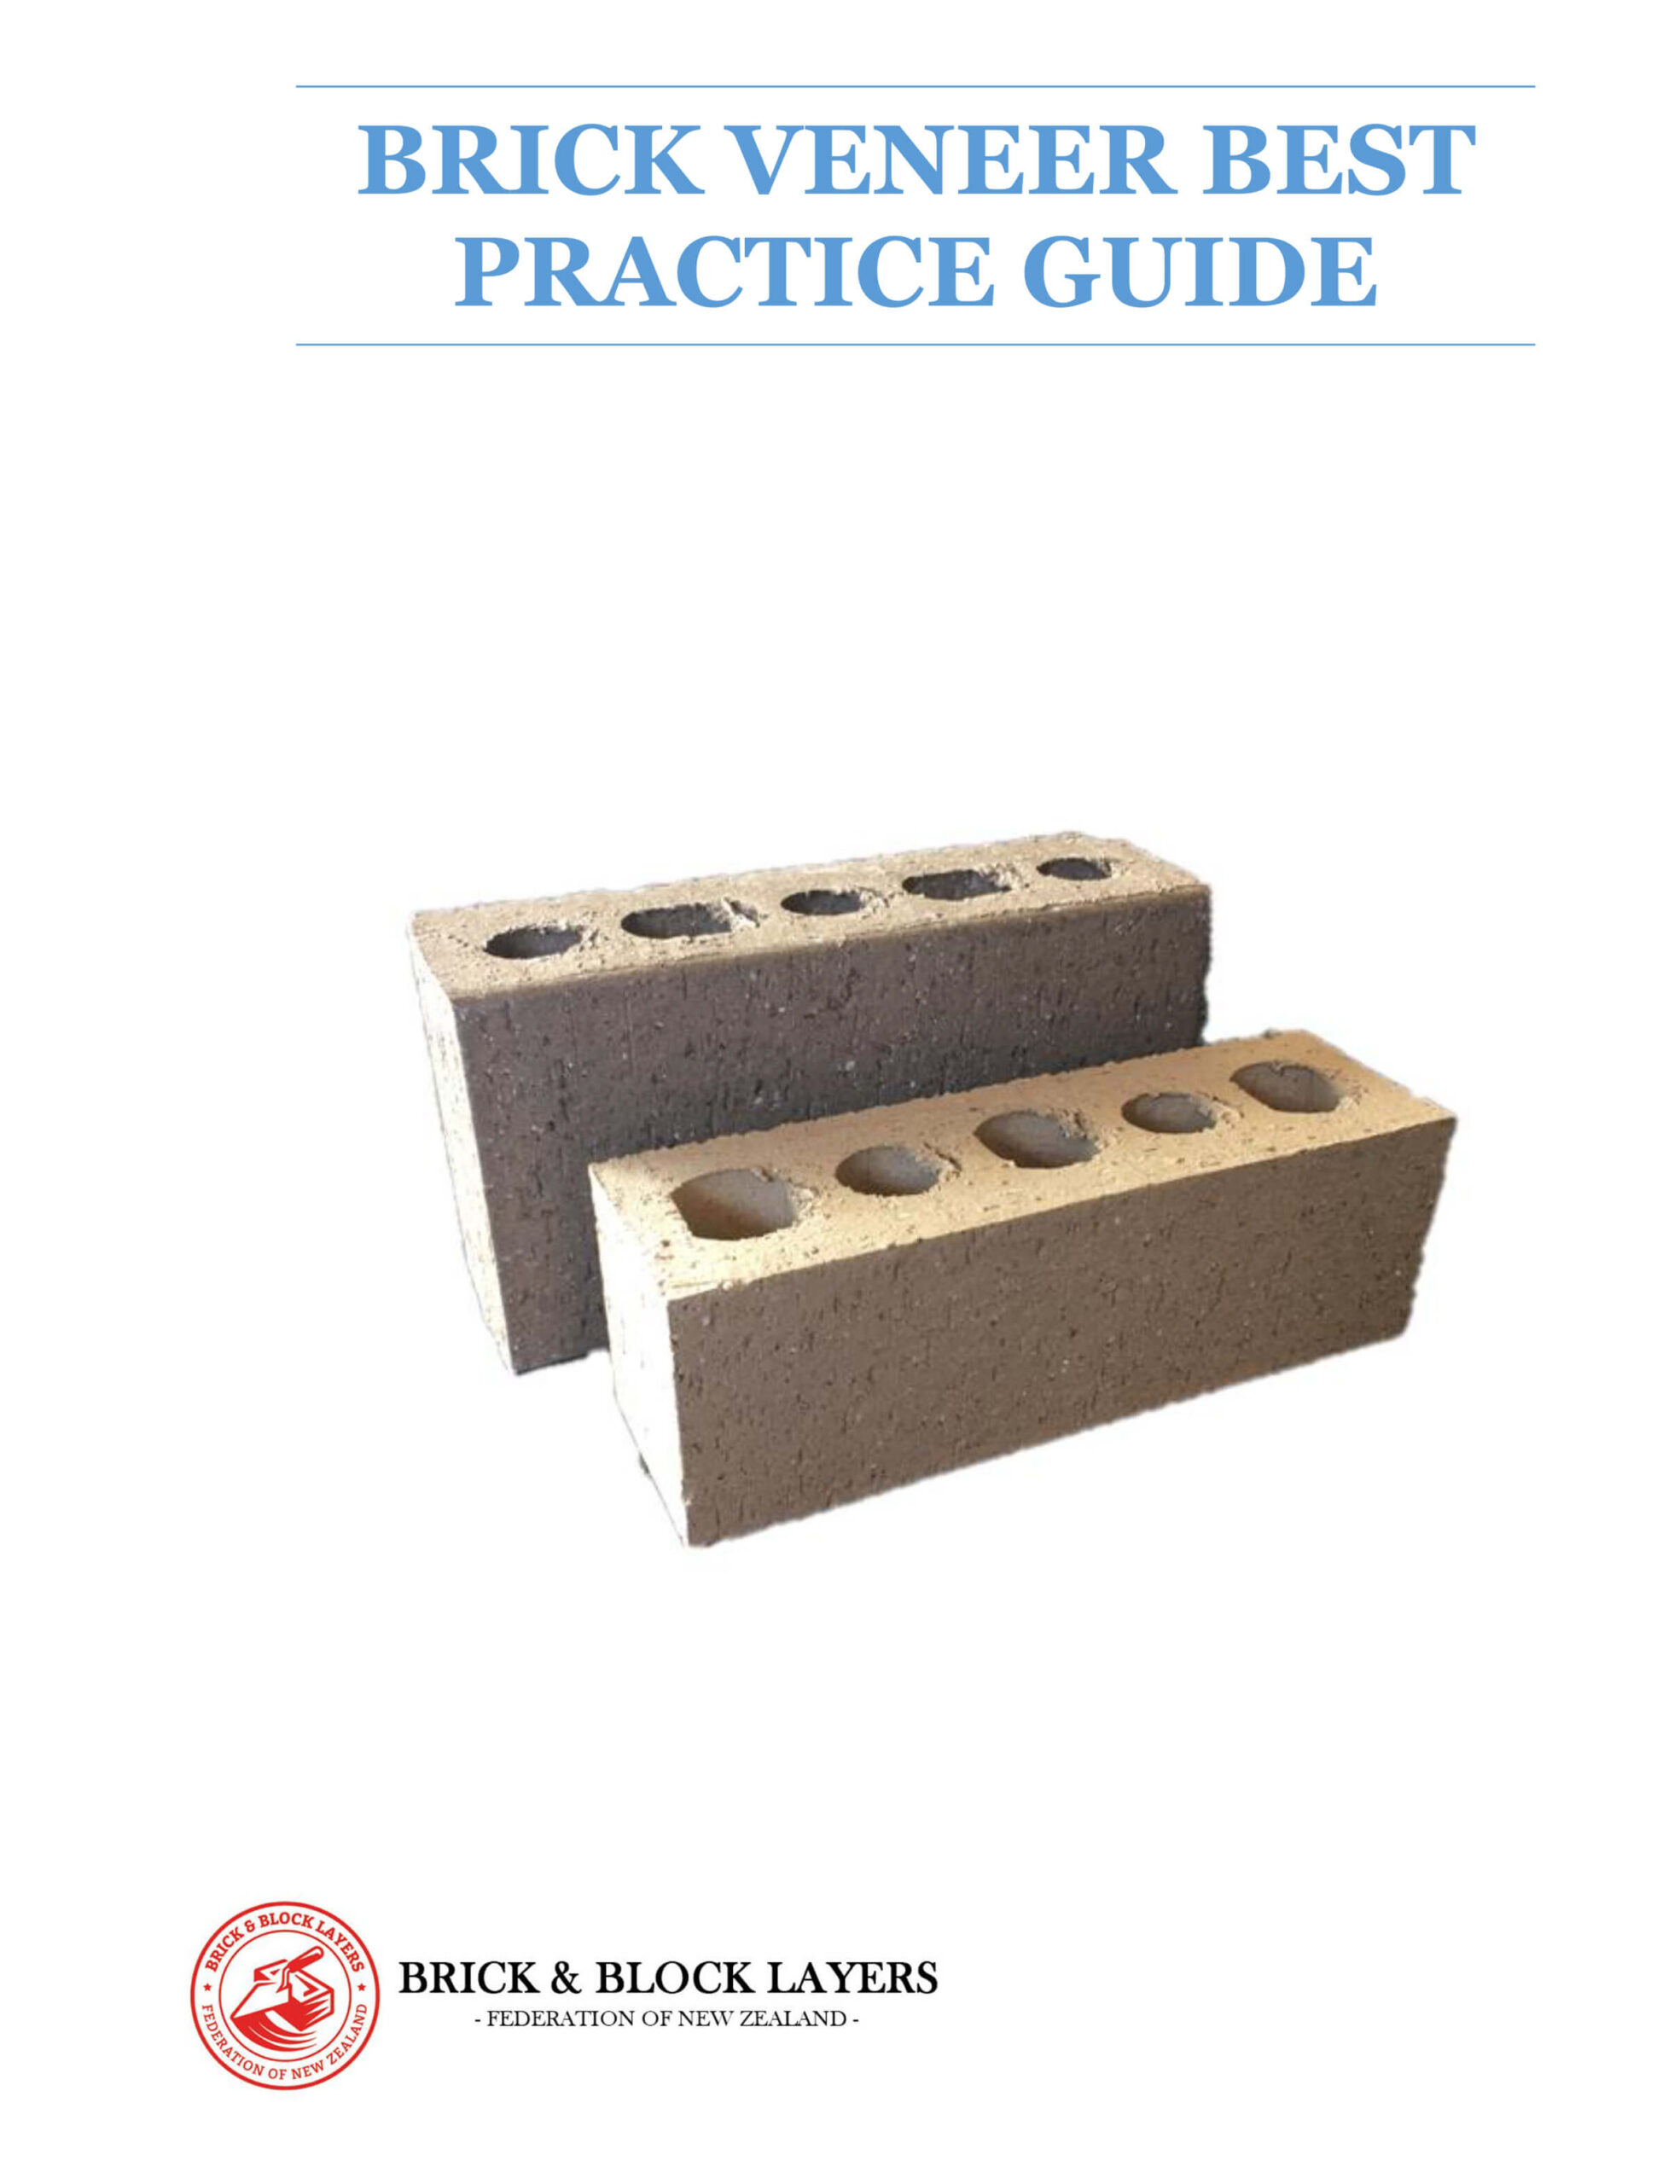 Brick Veneer Best Practice Guide thumbnail